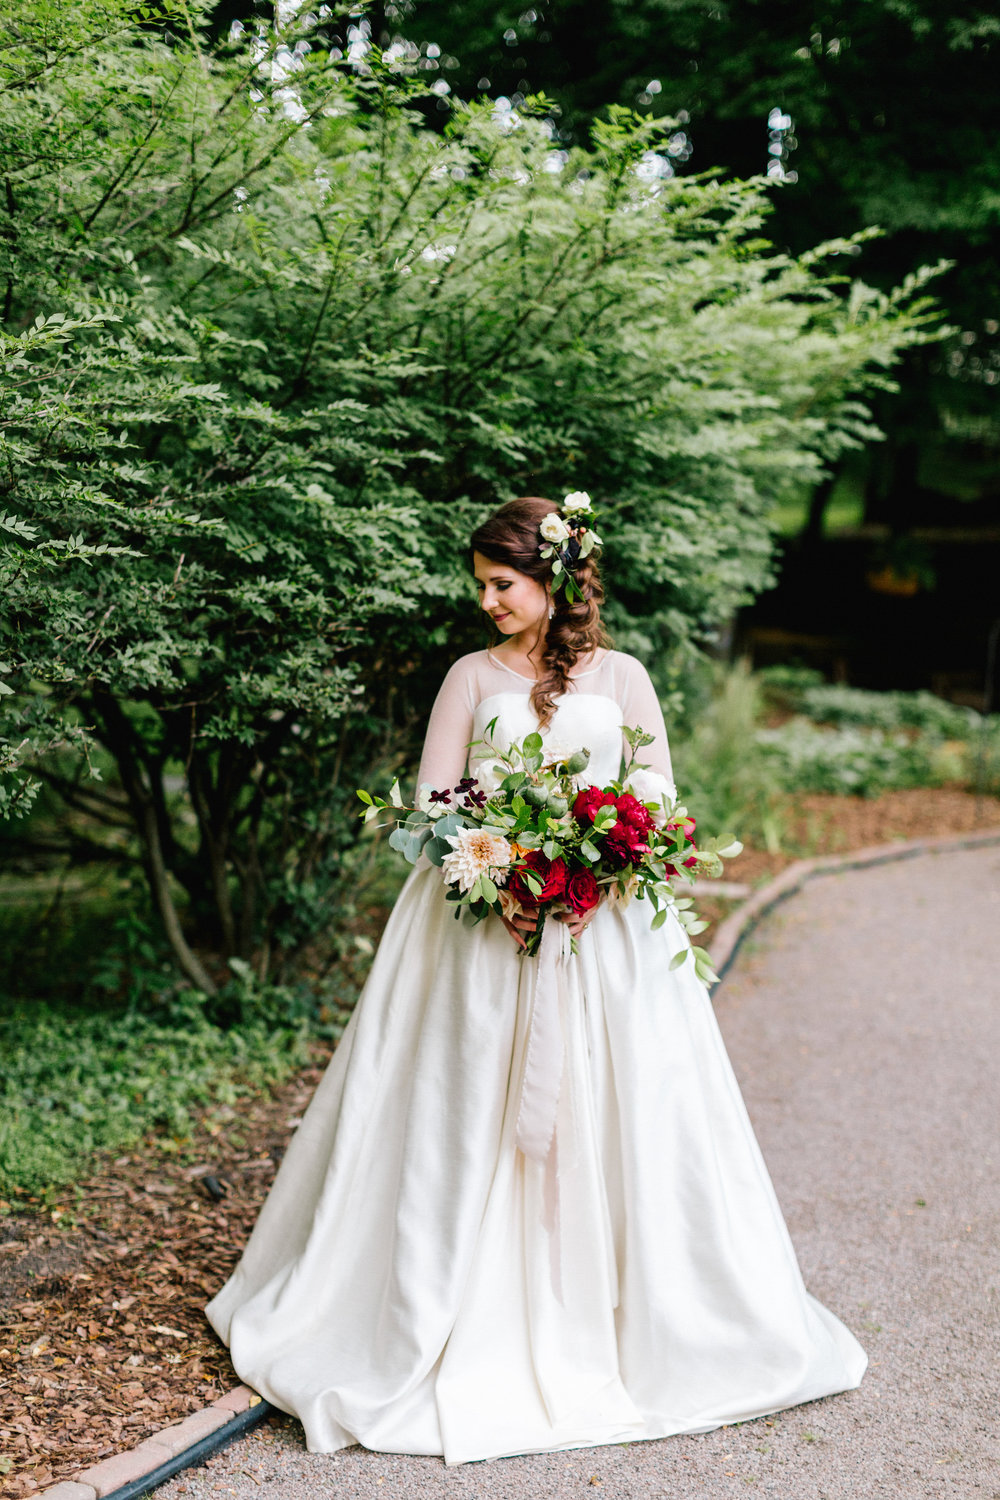 Allison_Hopperstad_Photography_Acowsay_Wedding_Bride.JPG